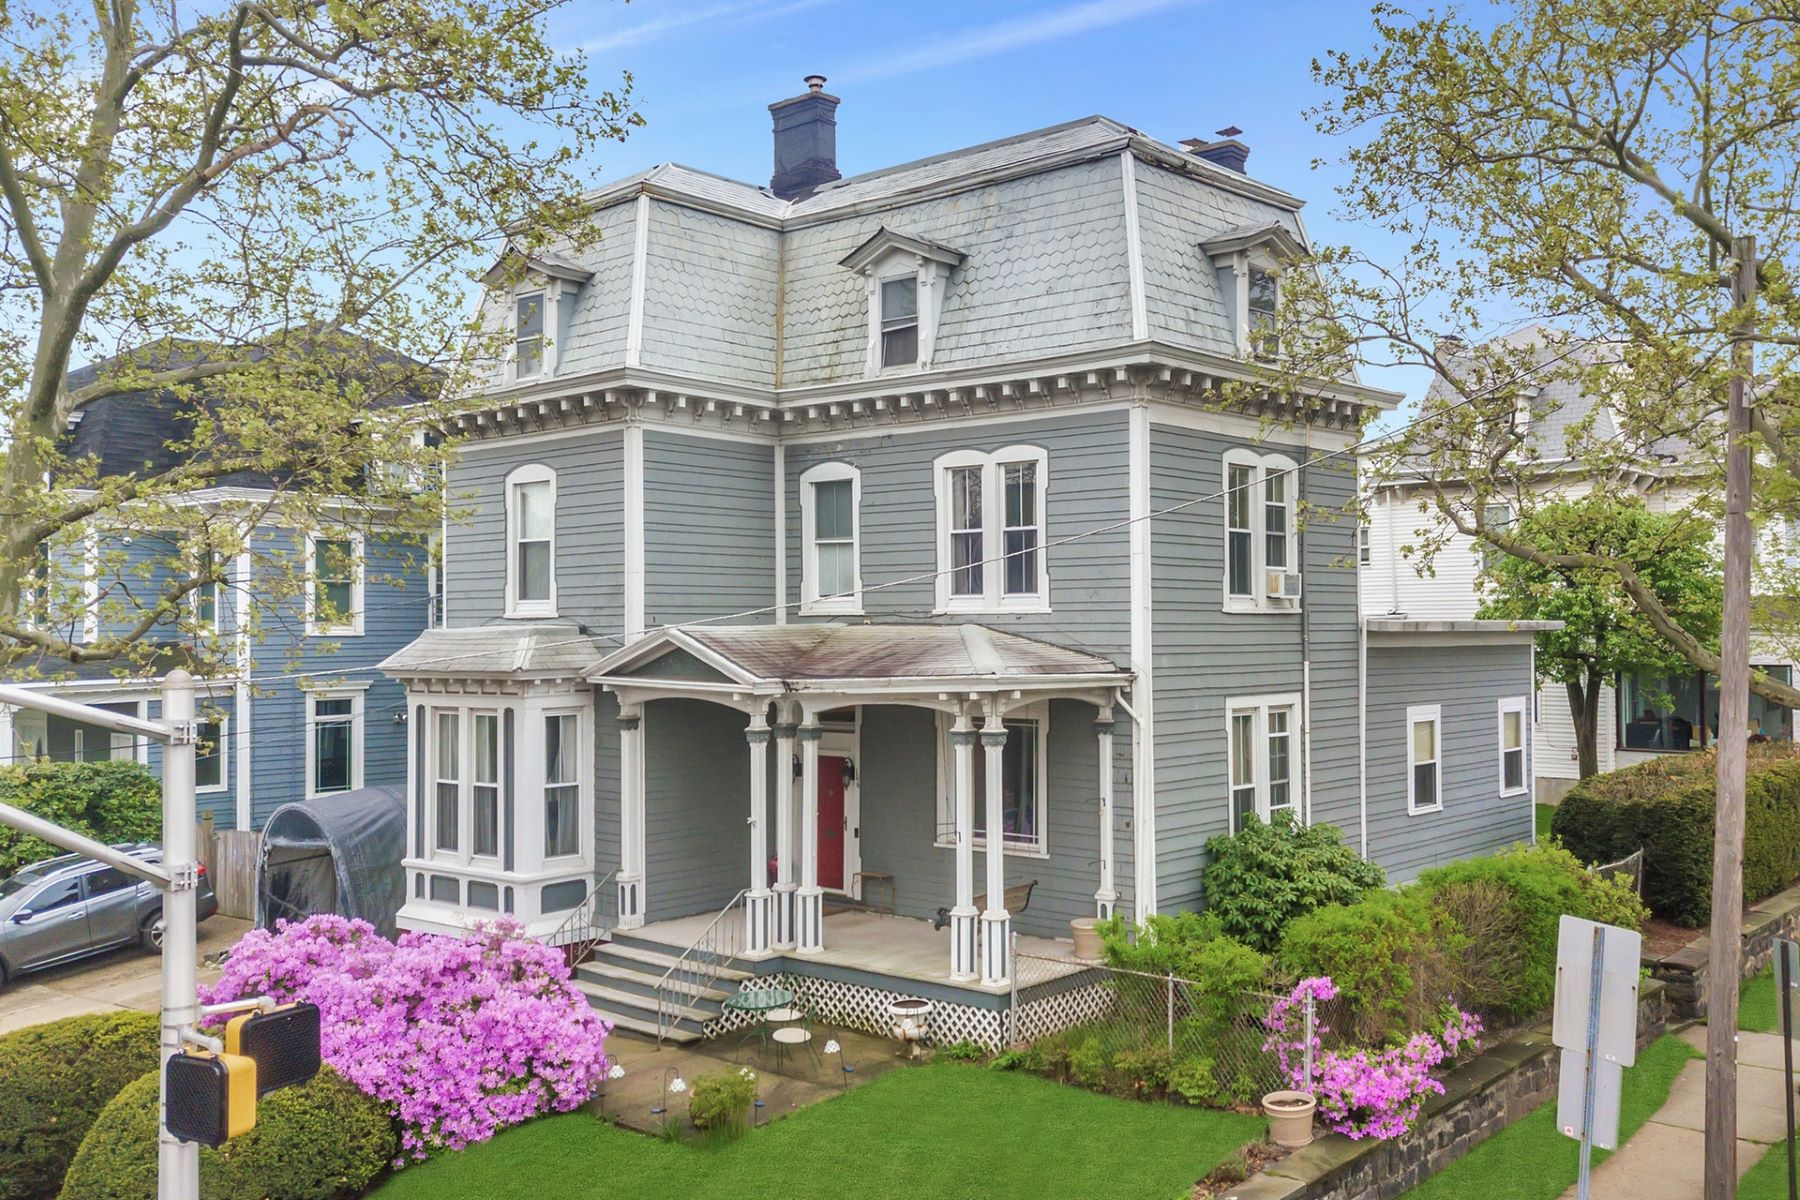 Single Family Homes for Sale at Architecturally significant 3 story Victorian mansion in Bayonne 104-106 West 8th St Bayonne, New Jersey 07002 United States